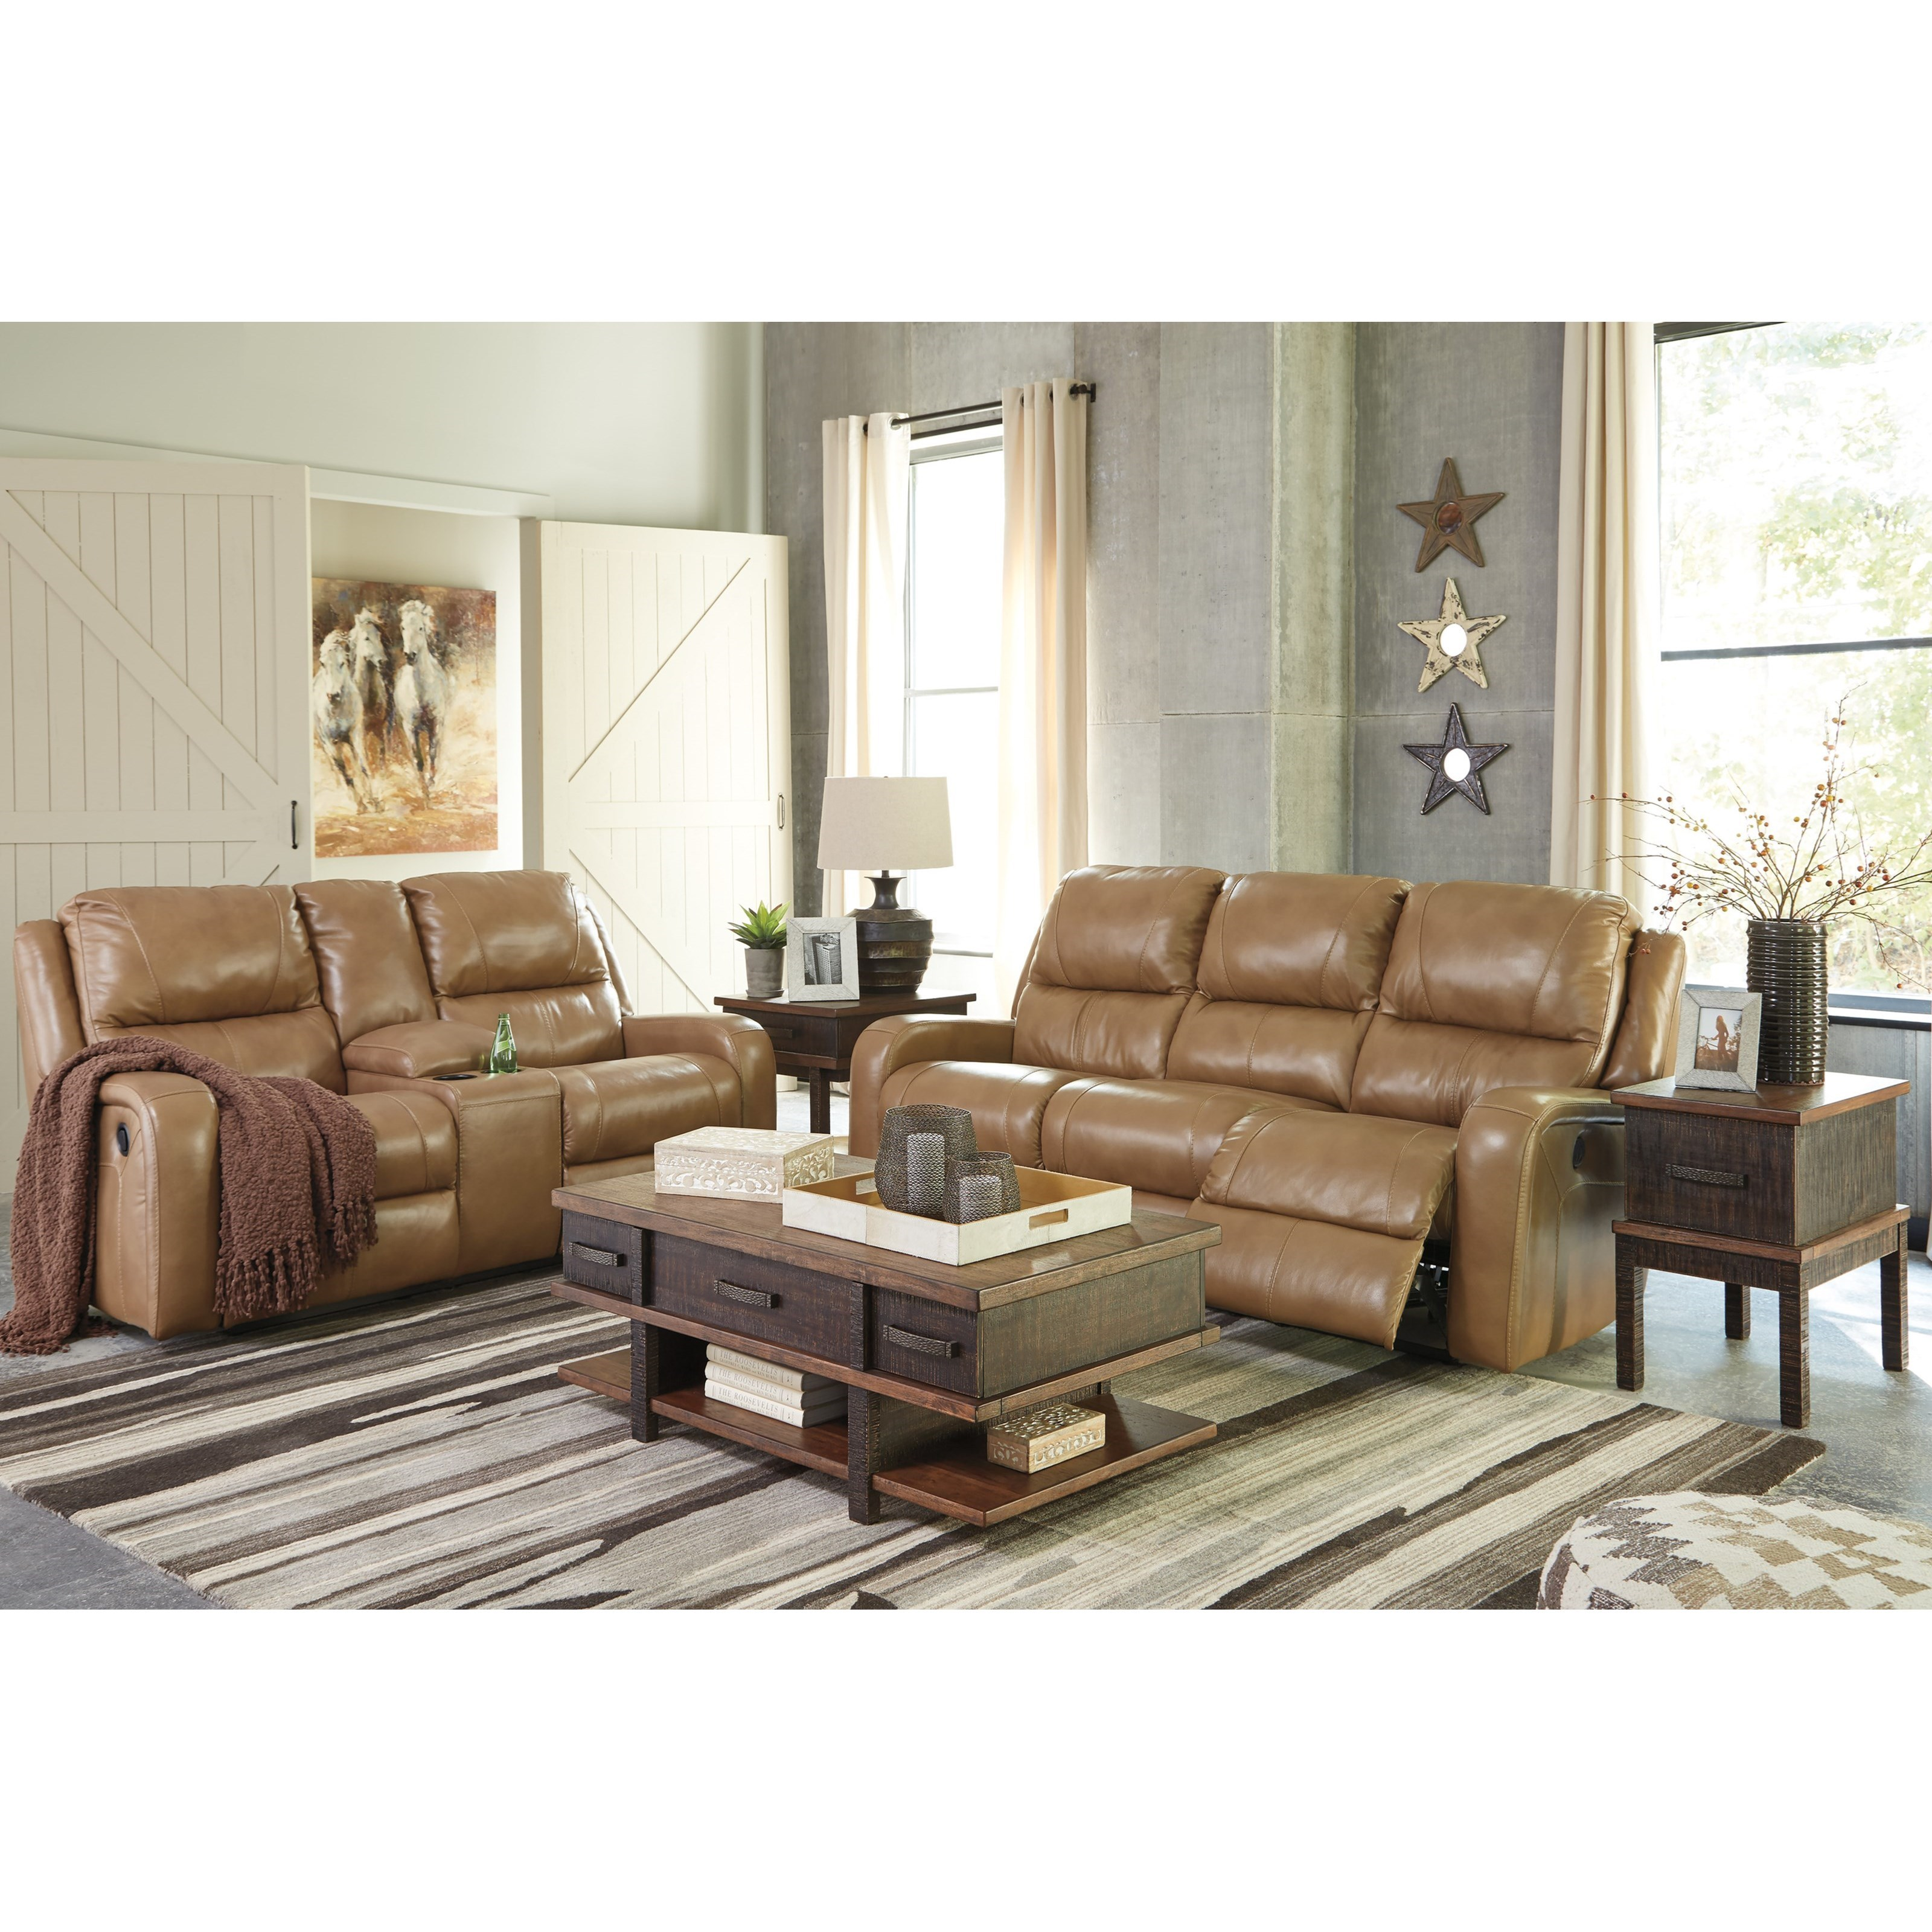 Signature Design By Ashley Roogan Power Reclining Living Room Group Del Sol